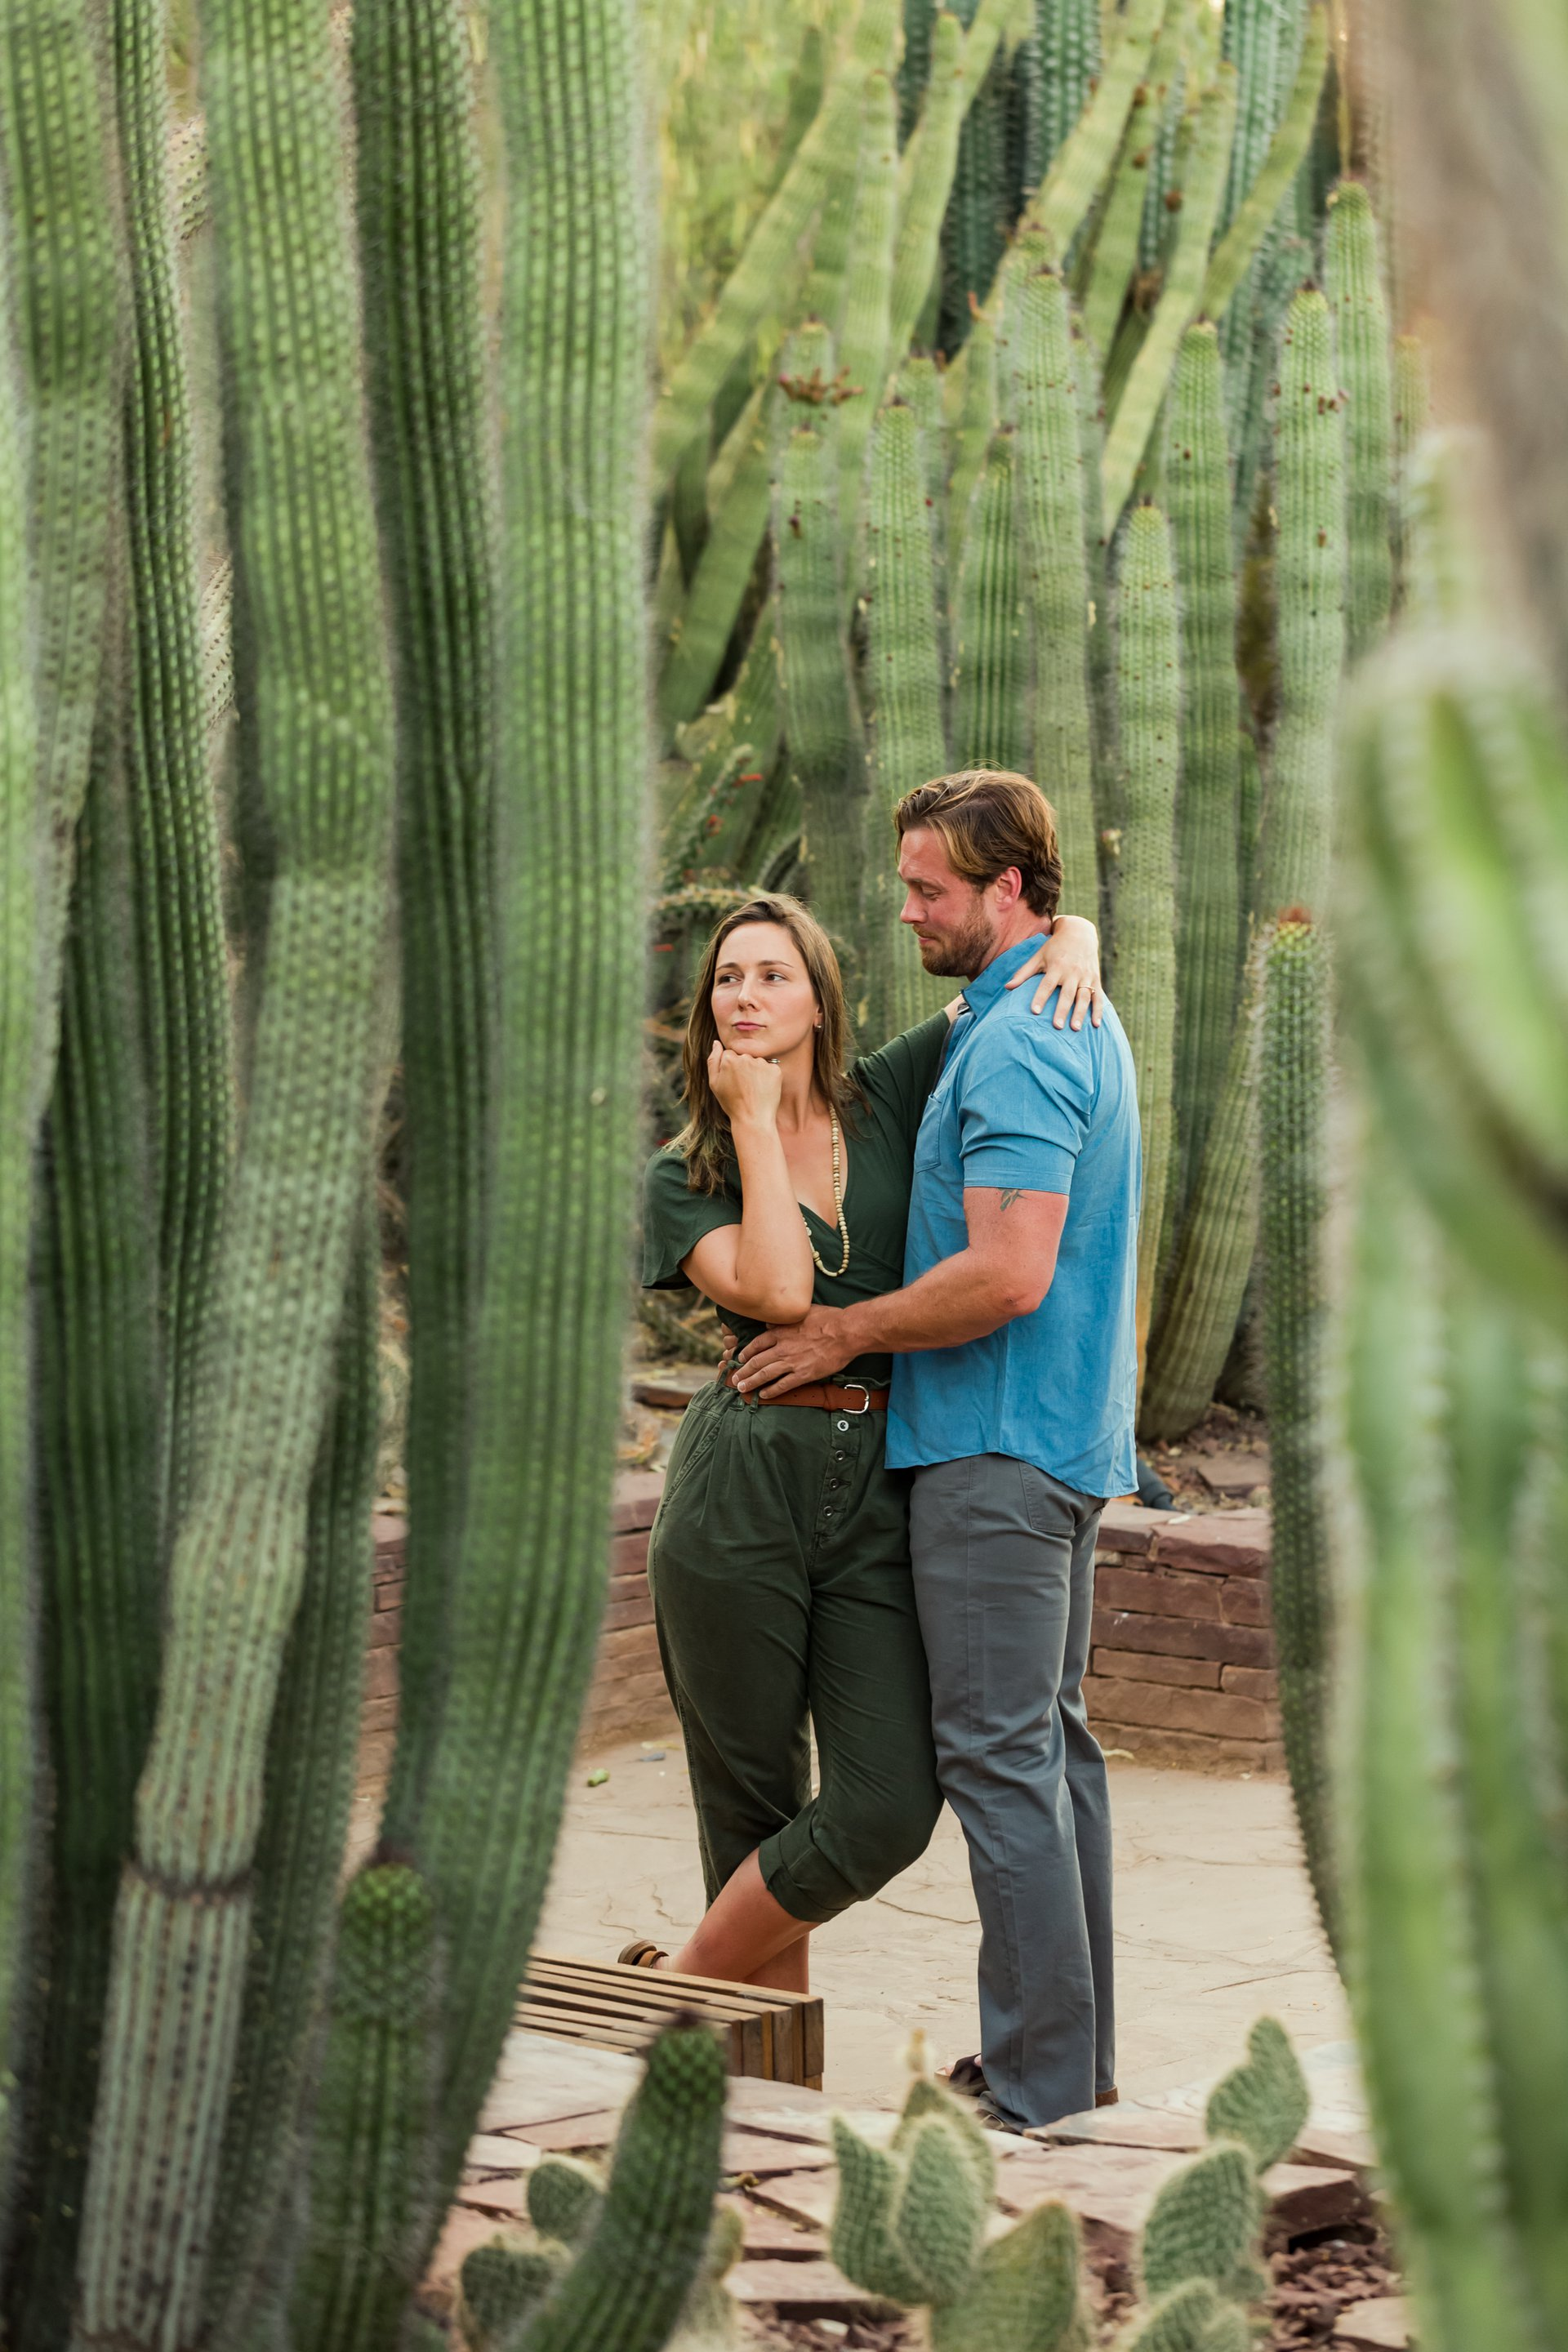 Scottsdale-United States-travel-story-Flytographer-5